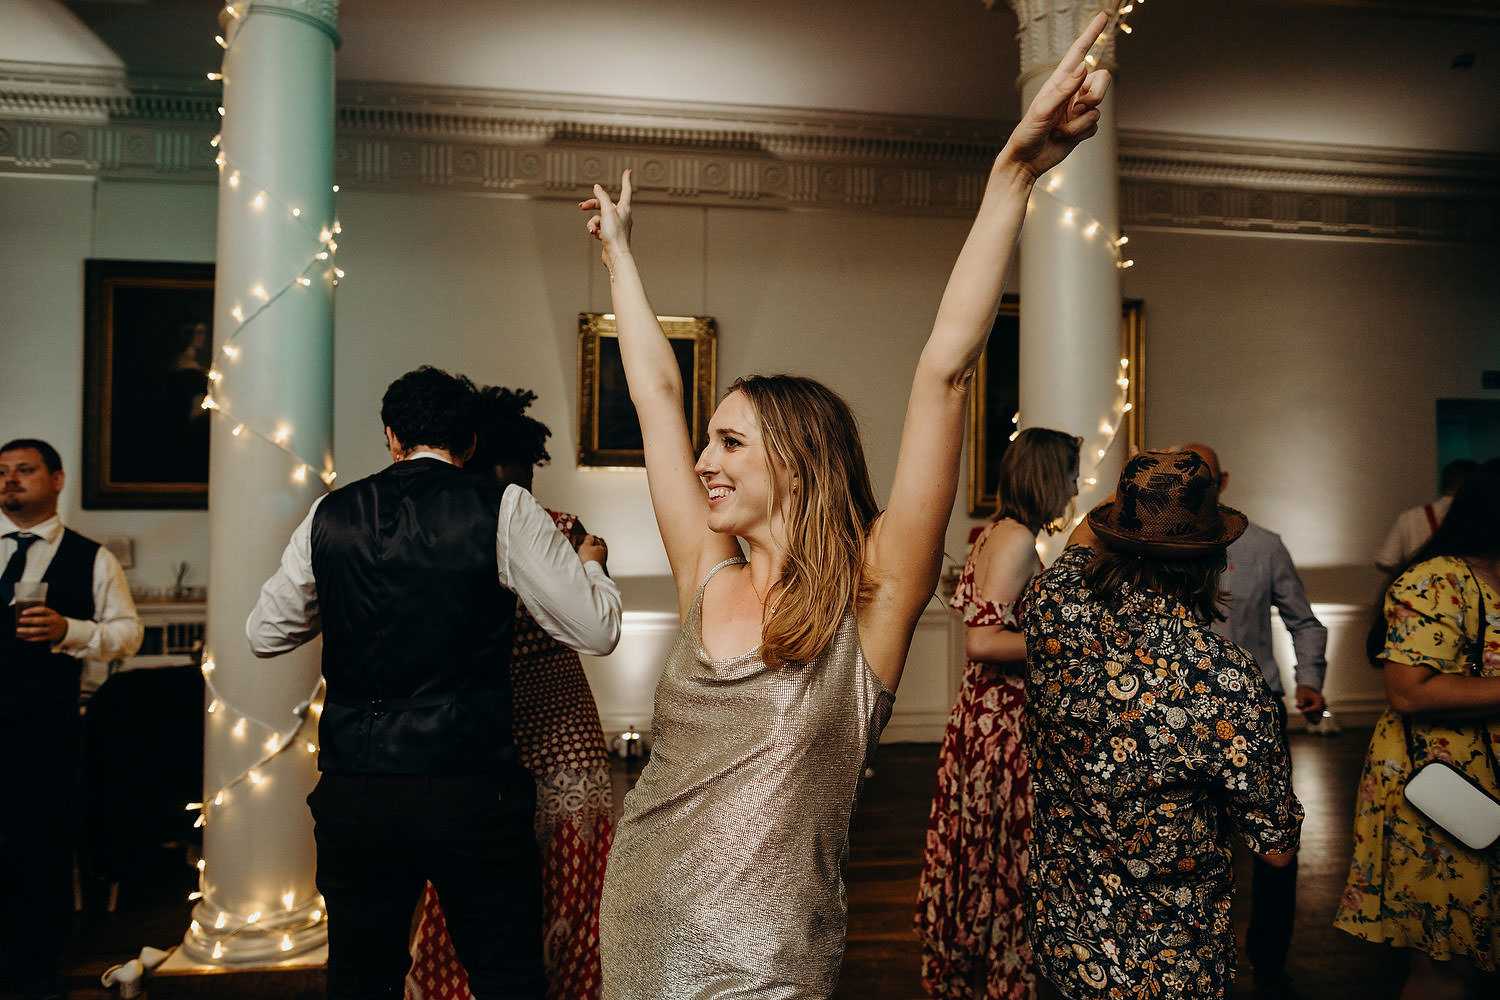 bride putting hands up in air